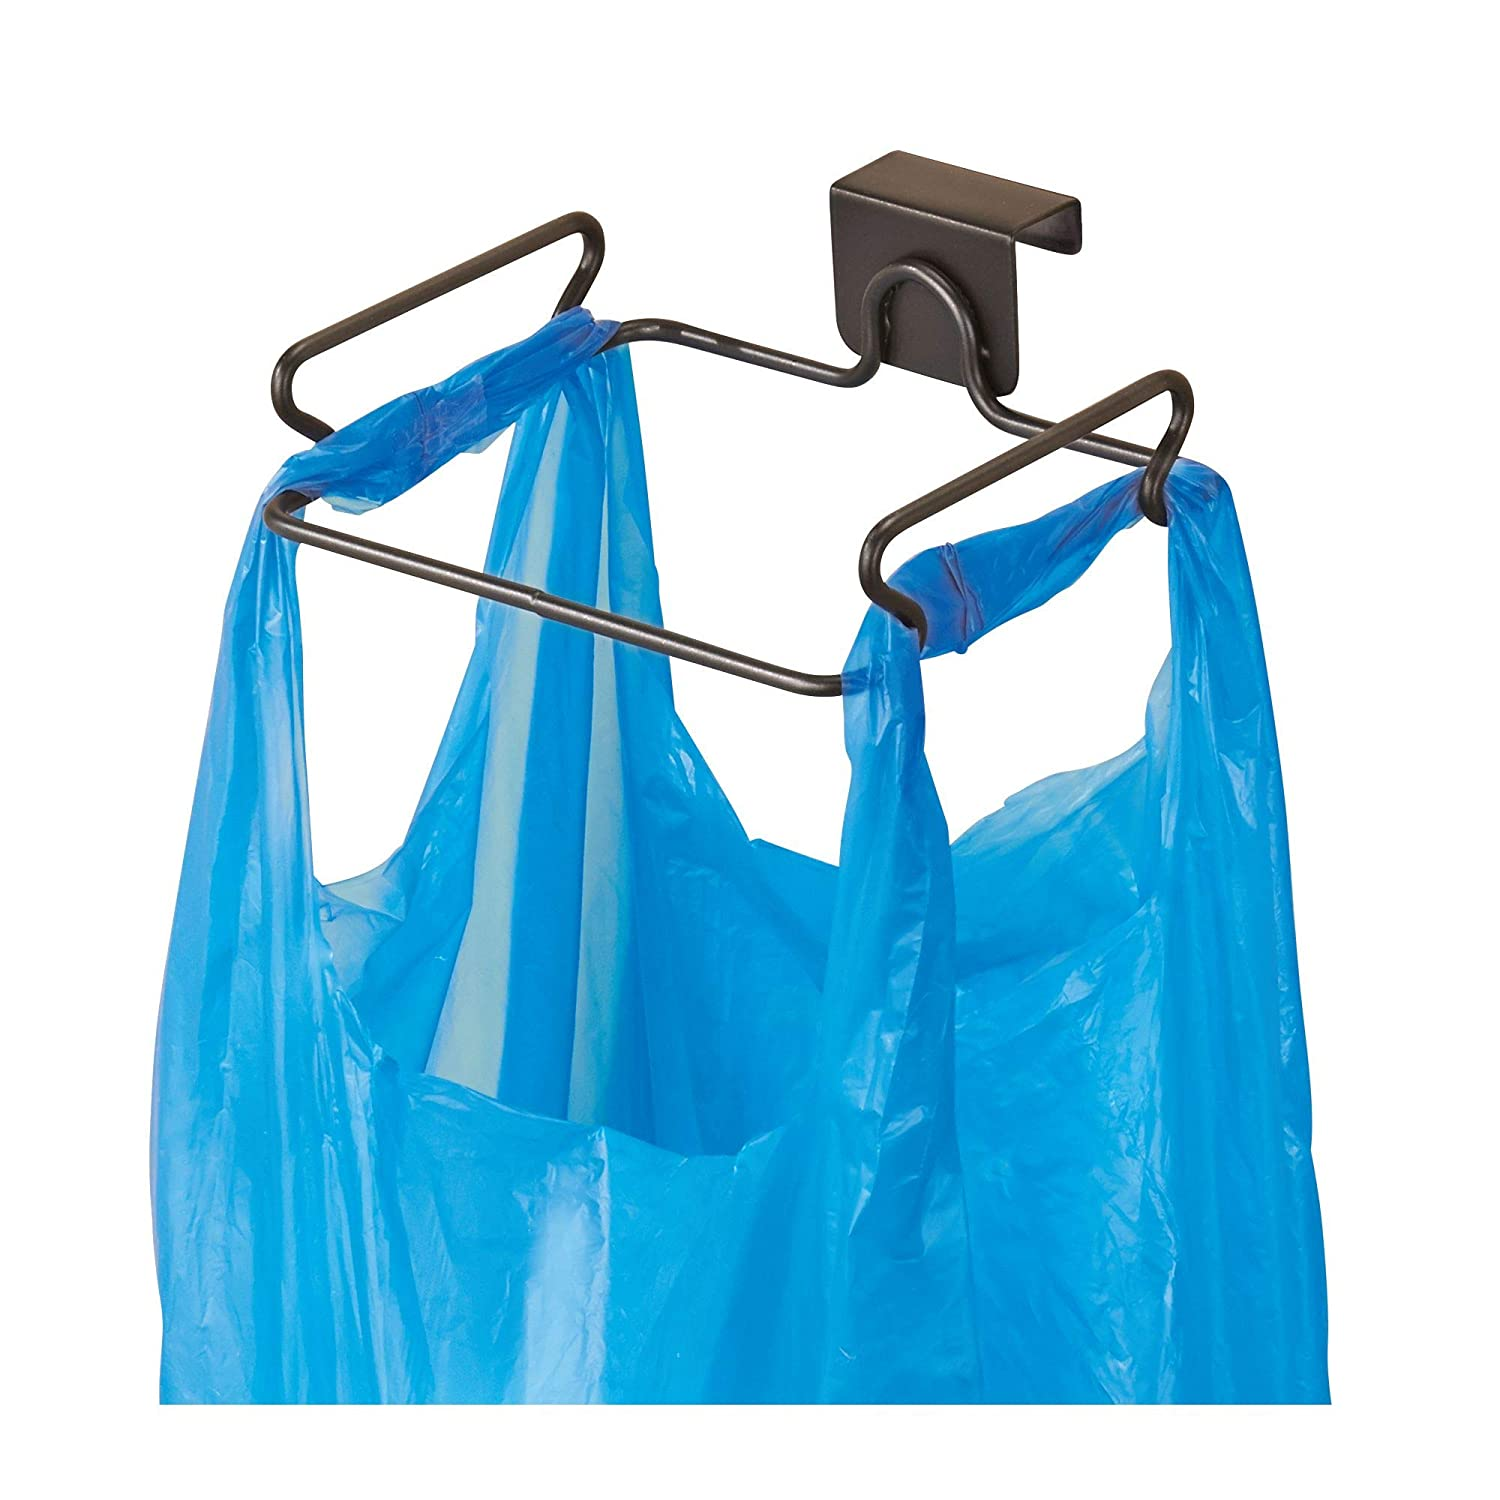 Garbage Bag Holder Under Sink Mounted Cabinet Trash Stand